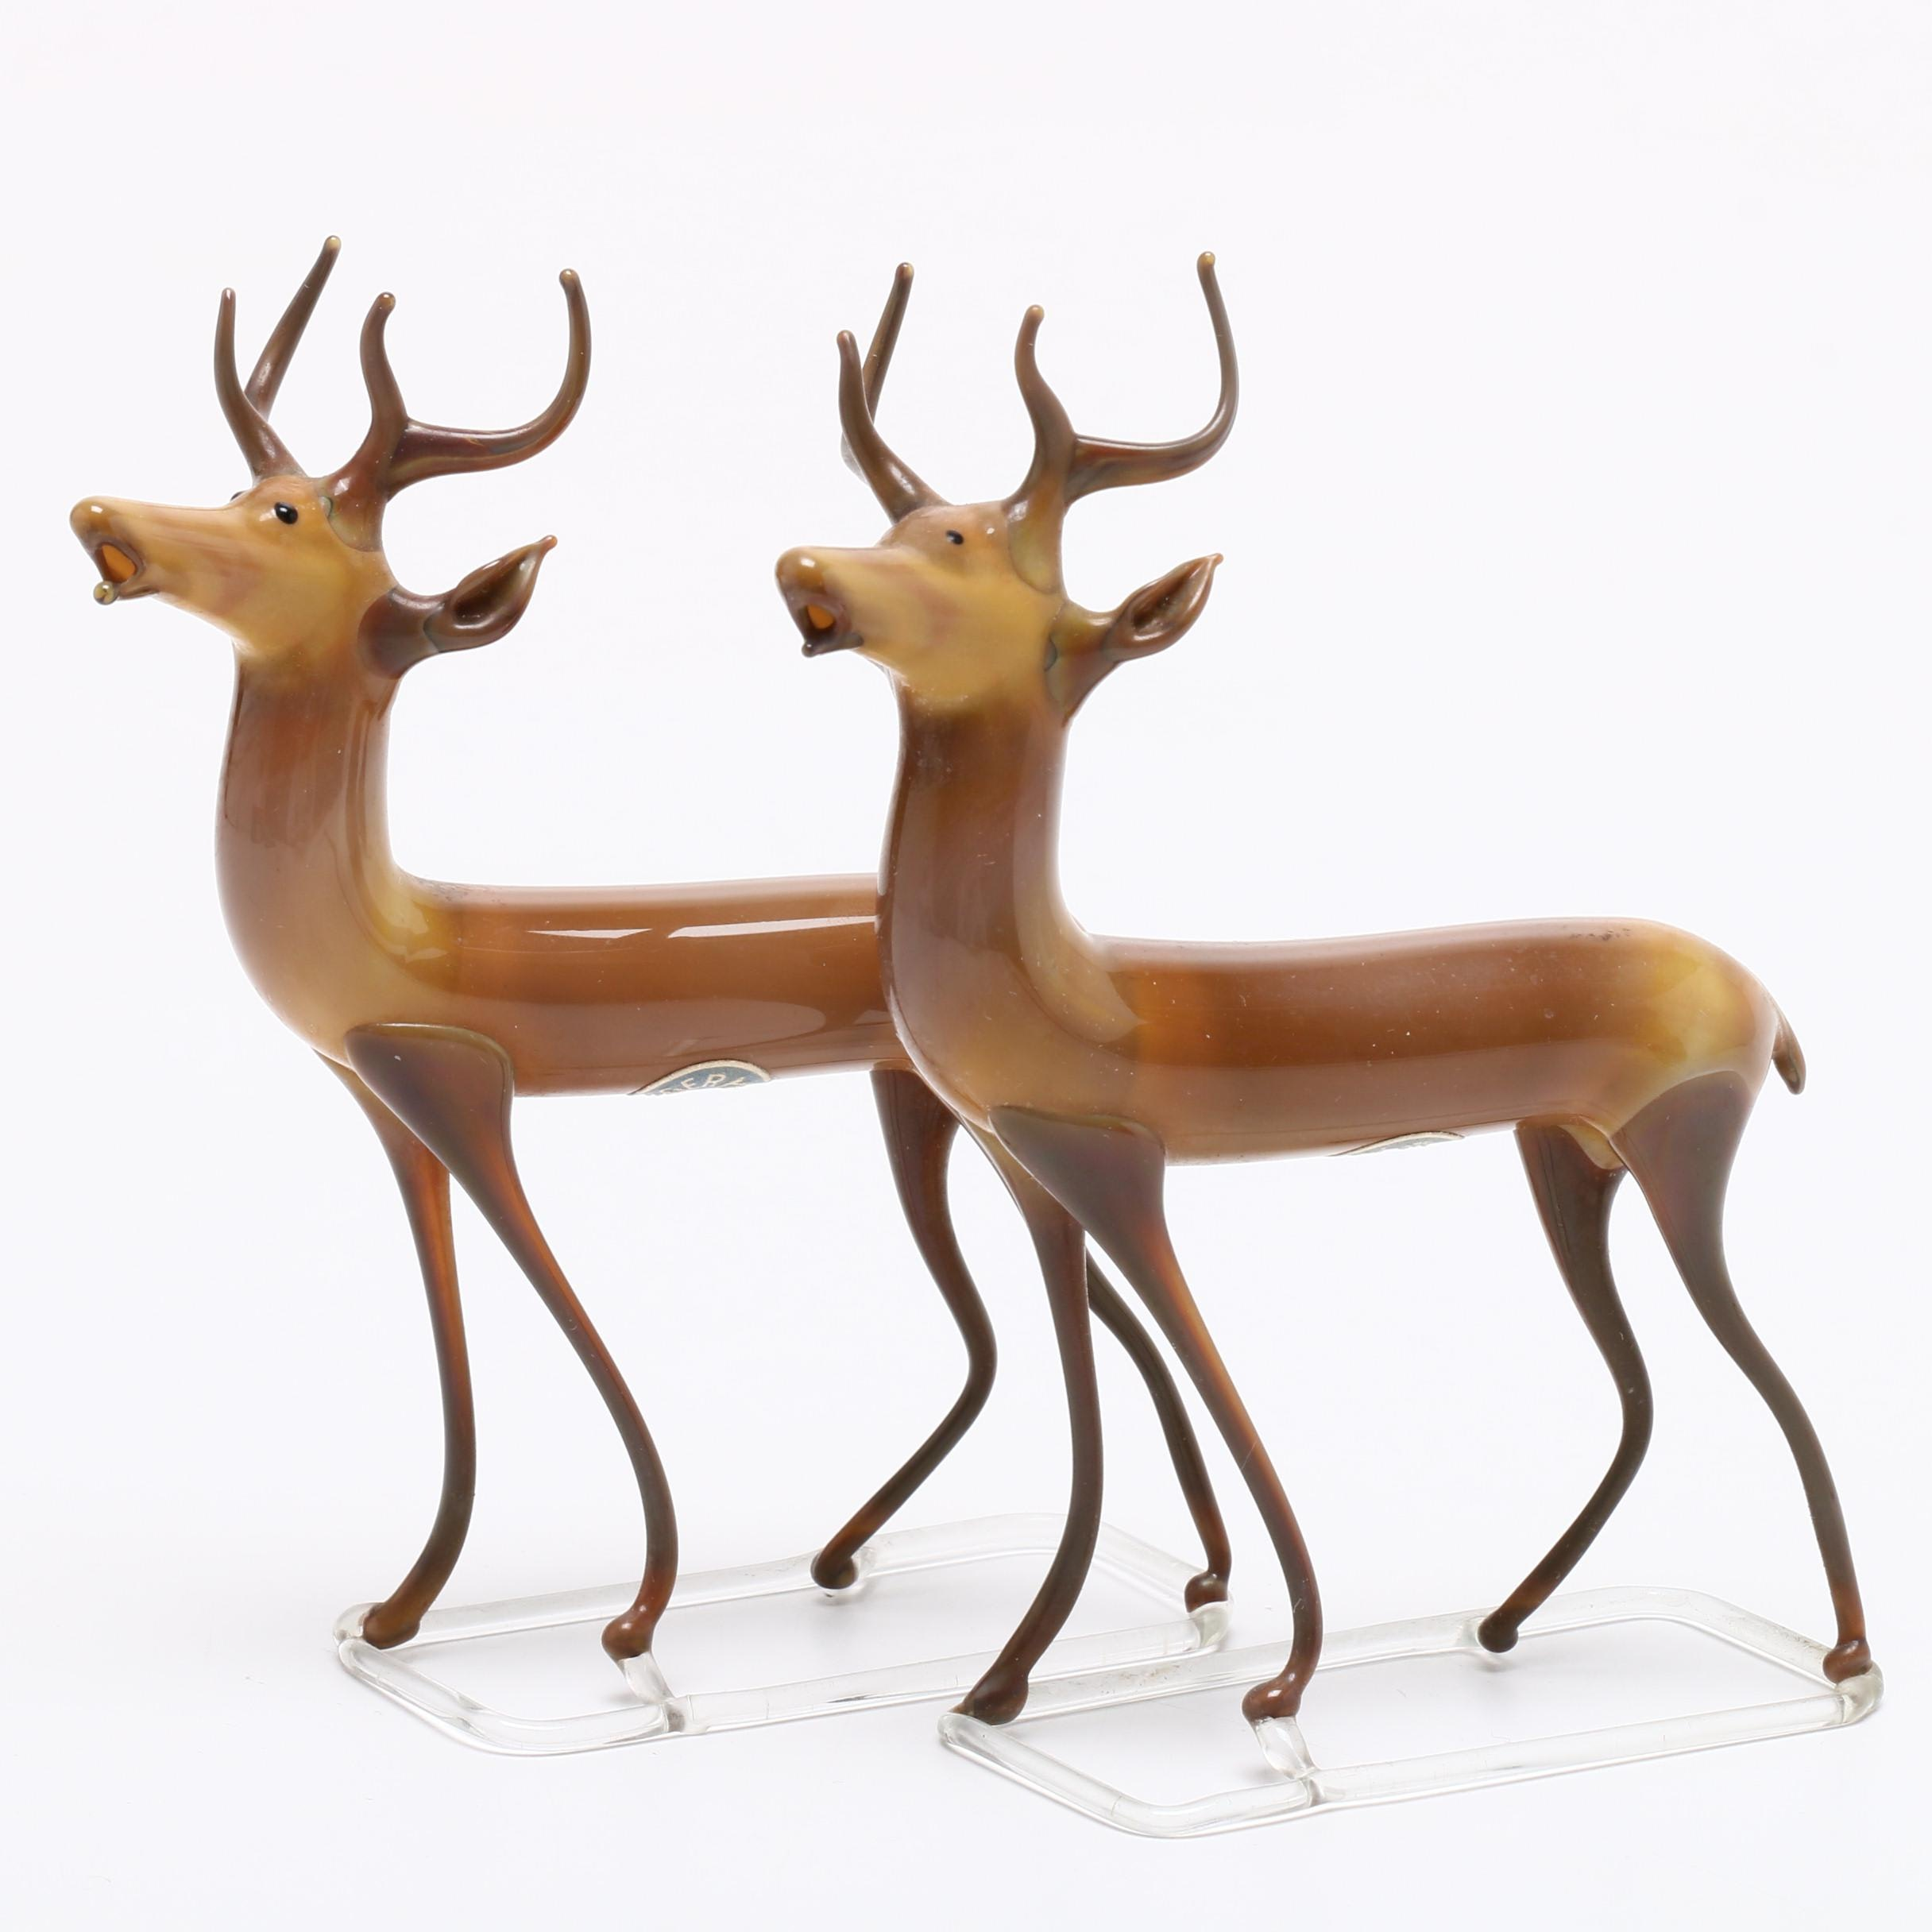 German Hand Blown Glass Deer Figurines, Mid-Century